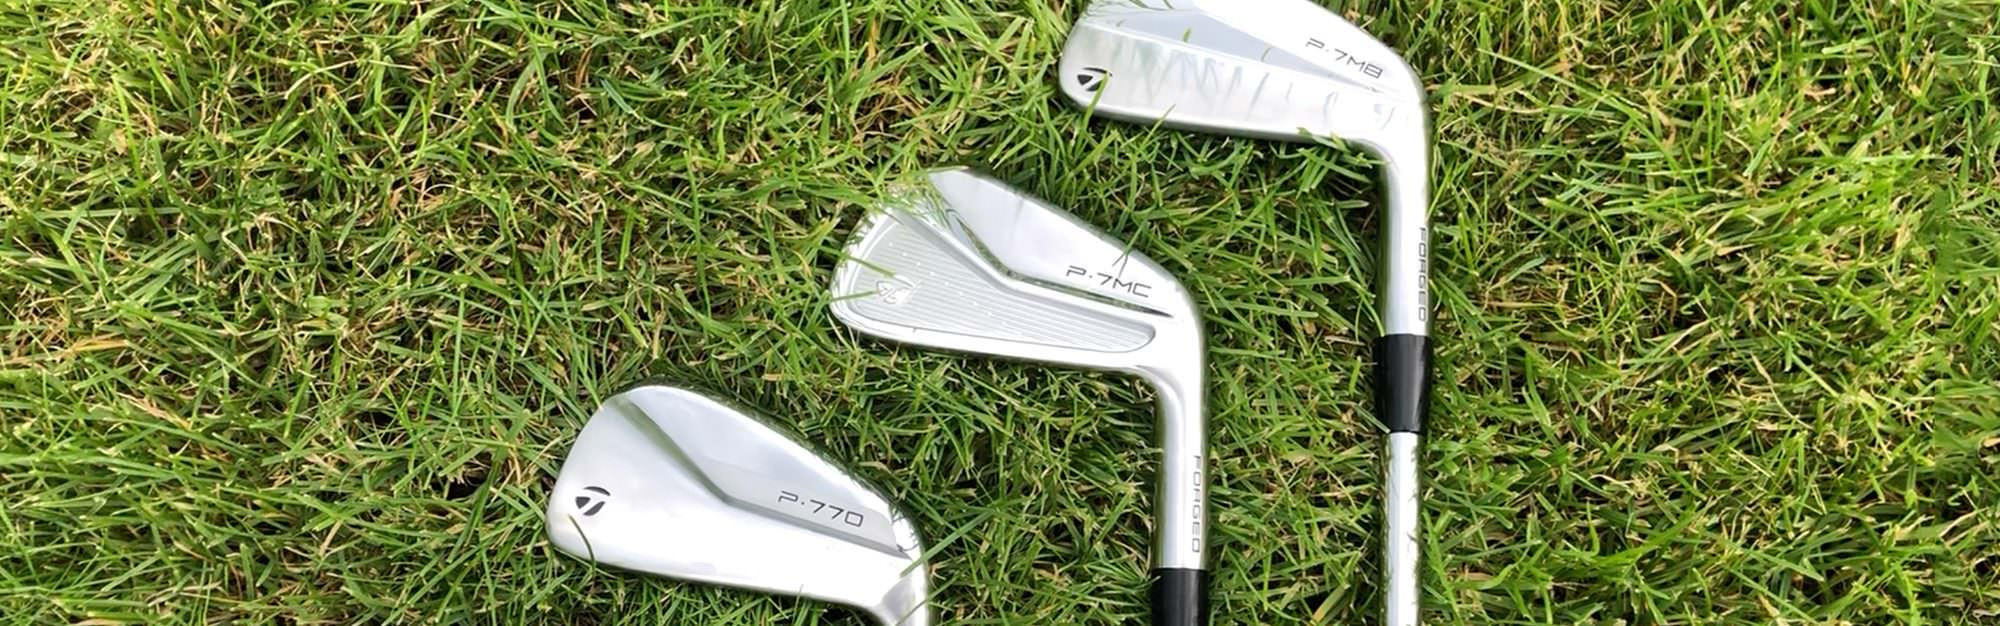 Which TaylorMade P700 iron is right for your game?